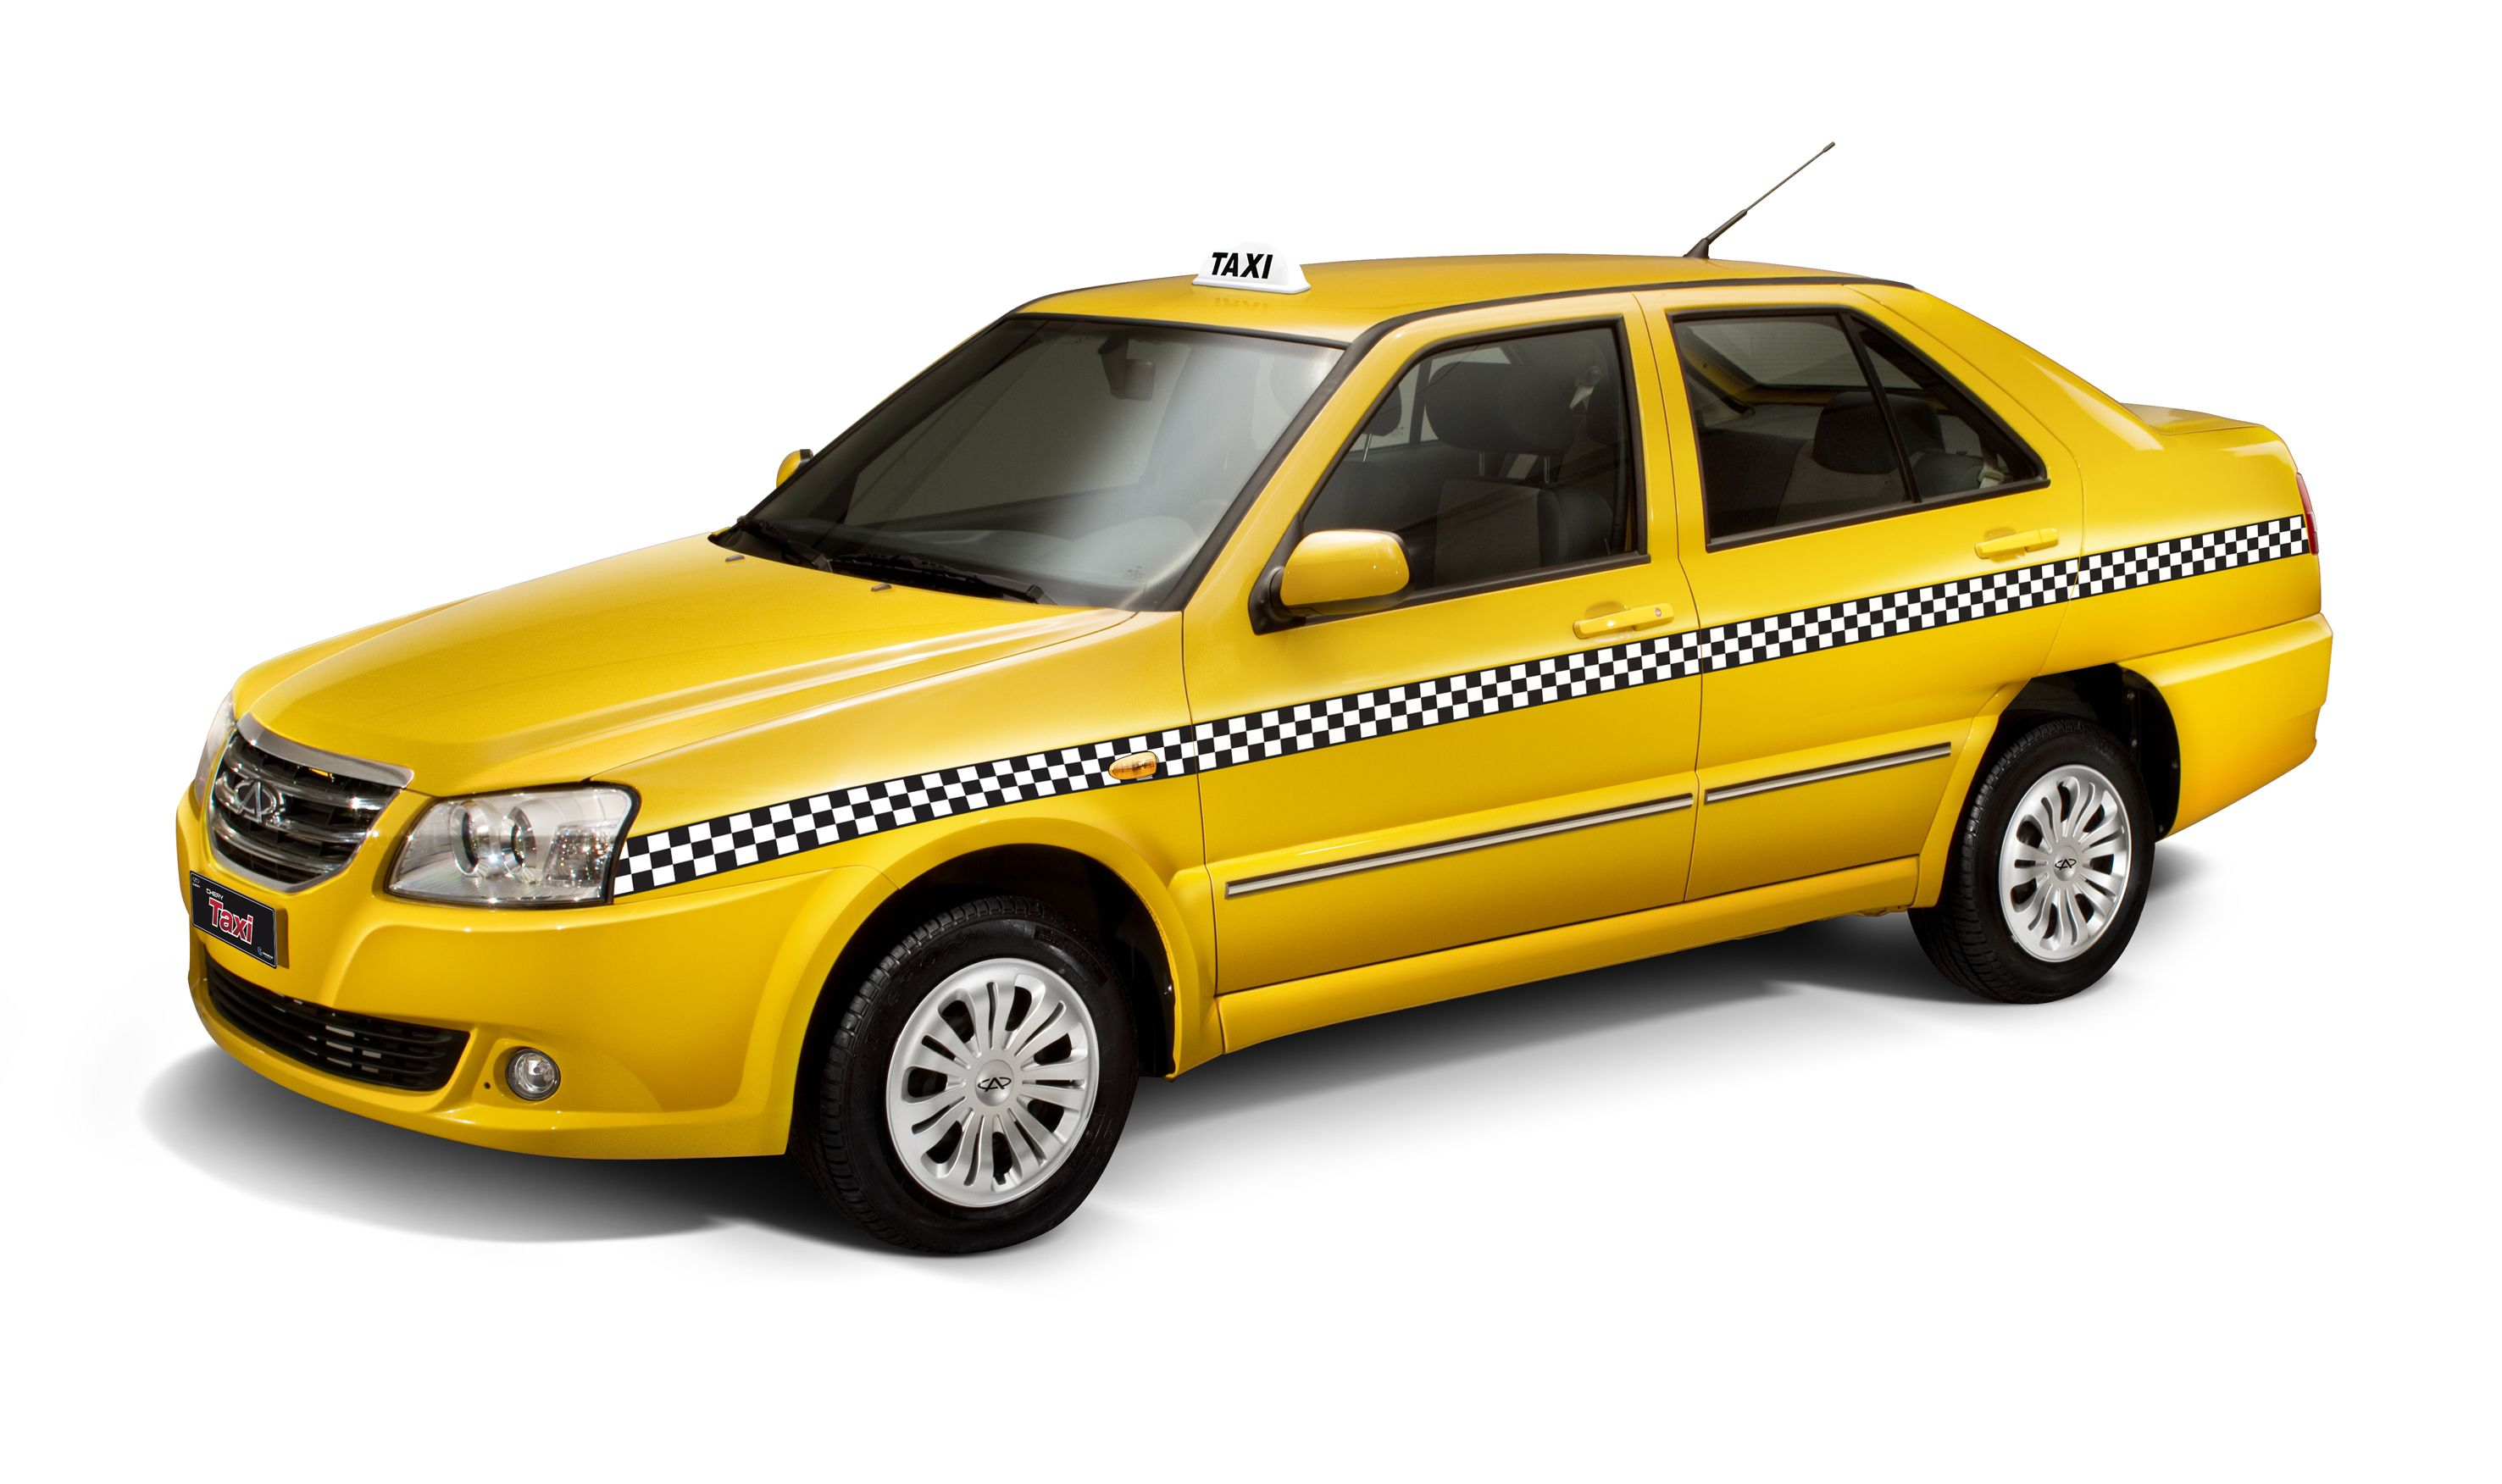 Aareman-Travels-Taxi-services-for-conferences-in-Udaipur